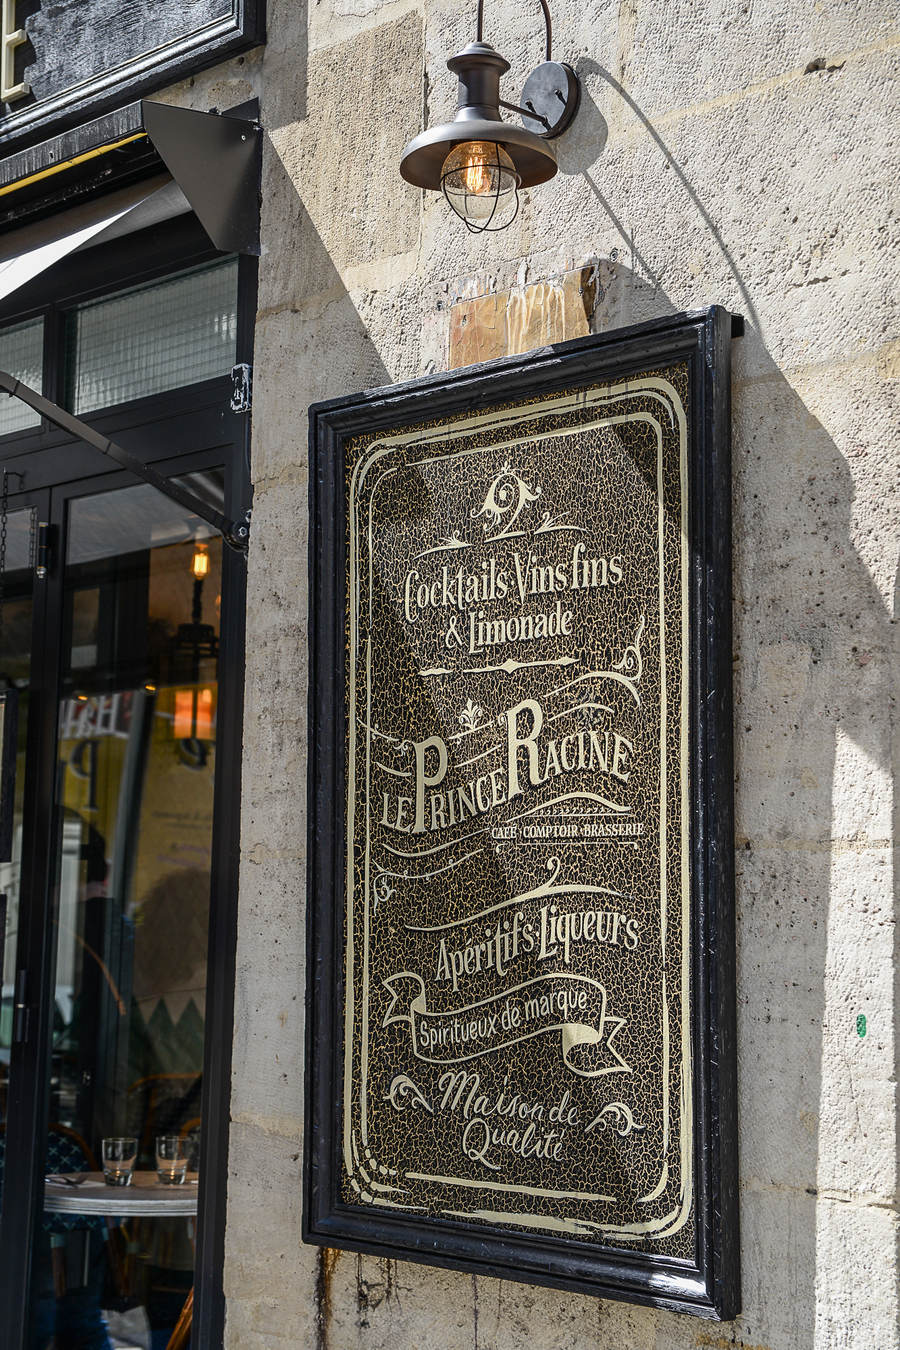 PRINCE-RACINE-EMMA-ROUX-RESTAURANT-BRASSERIE-CAFE-BAR-DECORATION-GRAPHISME-LUMINAIRE